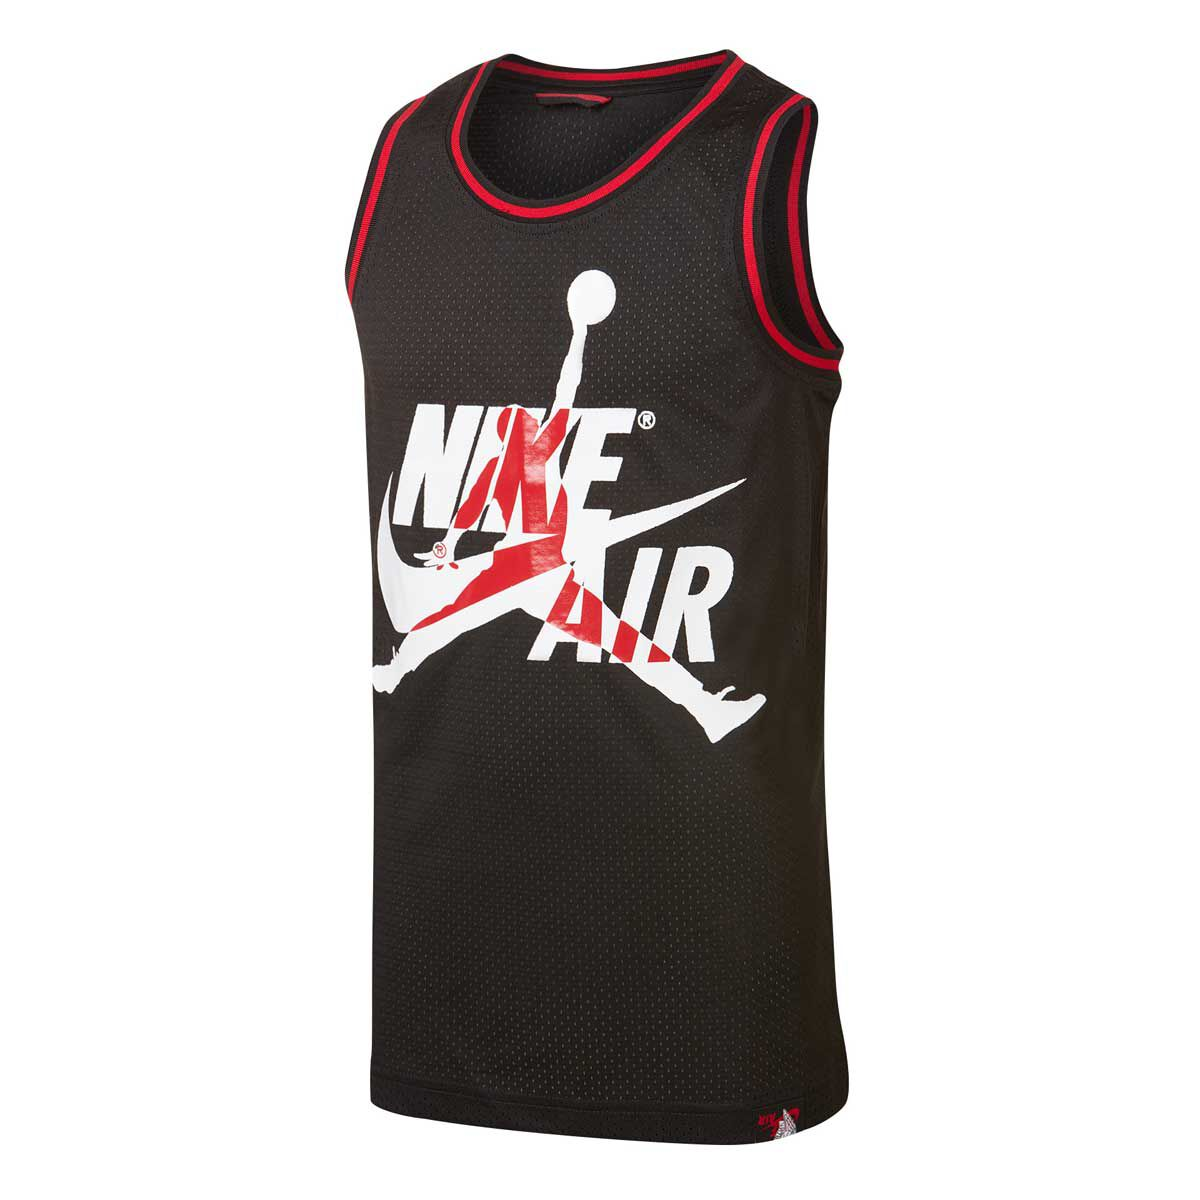 Boys Jordan Jumpman Basketball Jersey